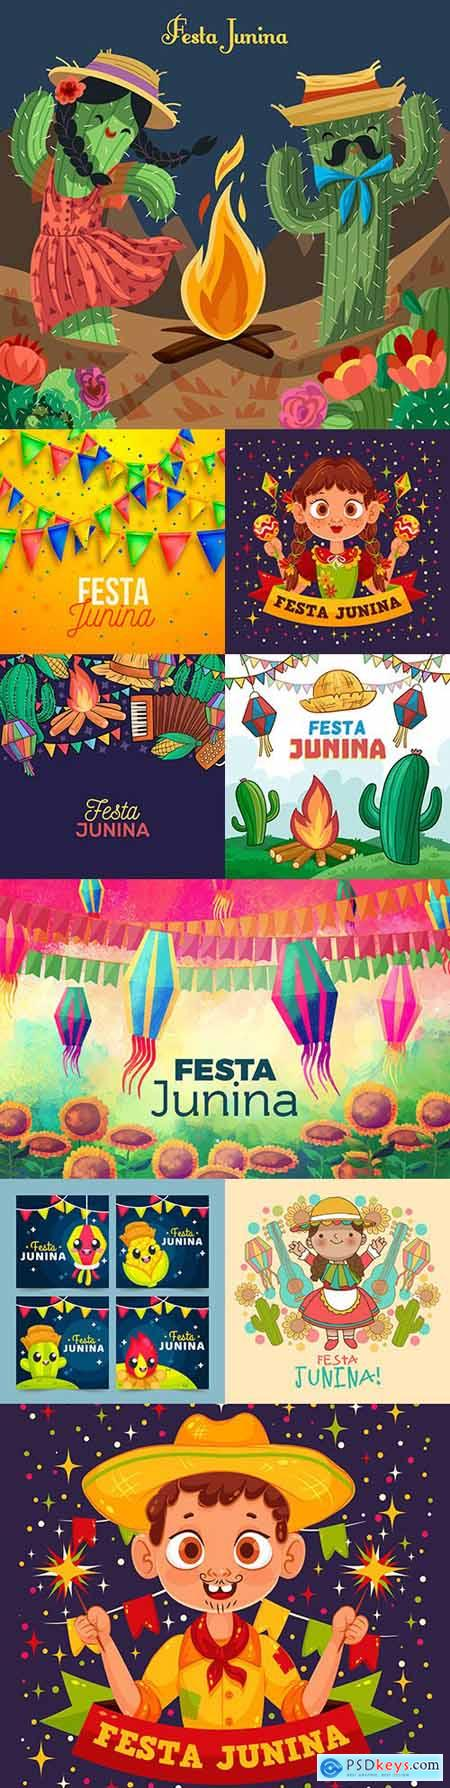 Festa Junina celebration drawn illustrations backgrounds